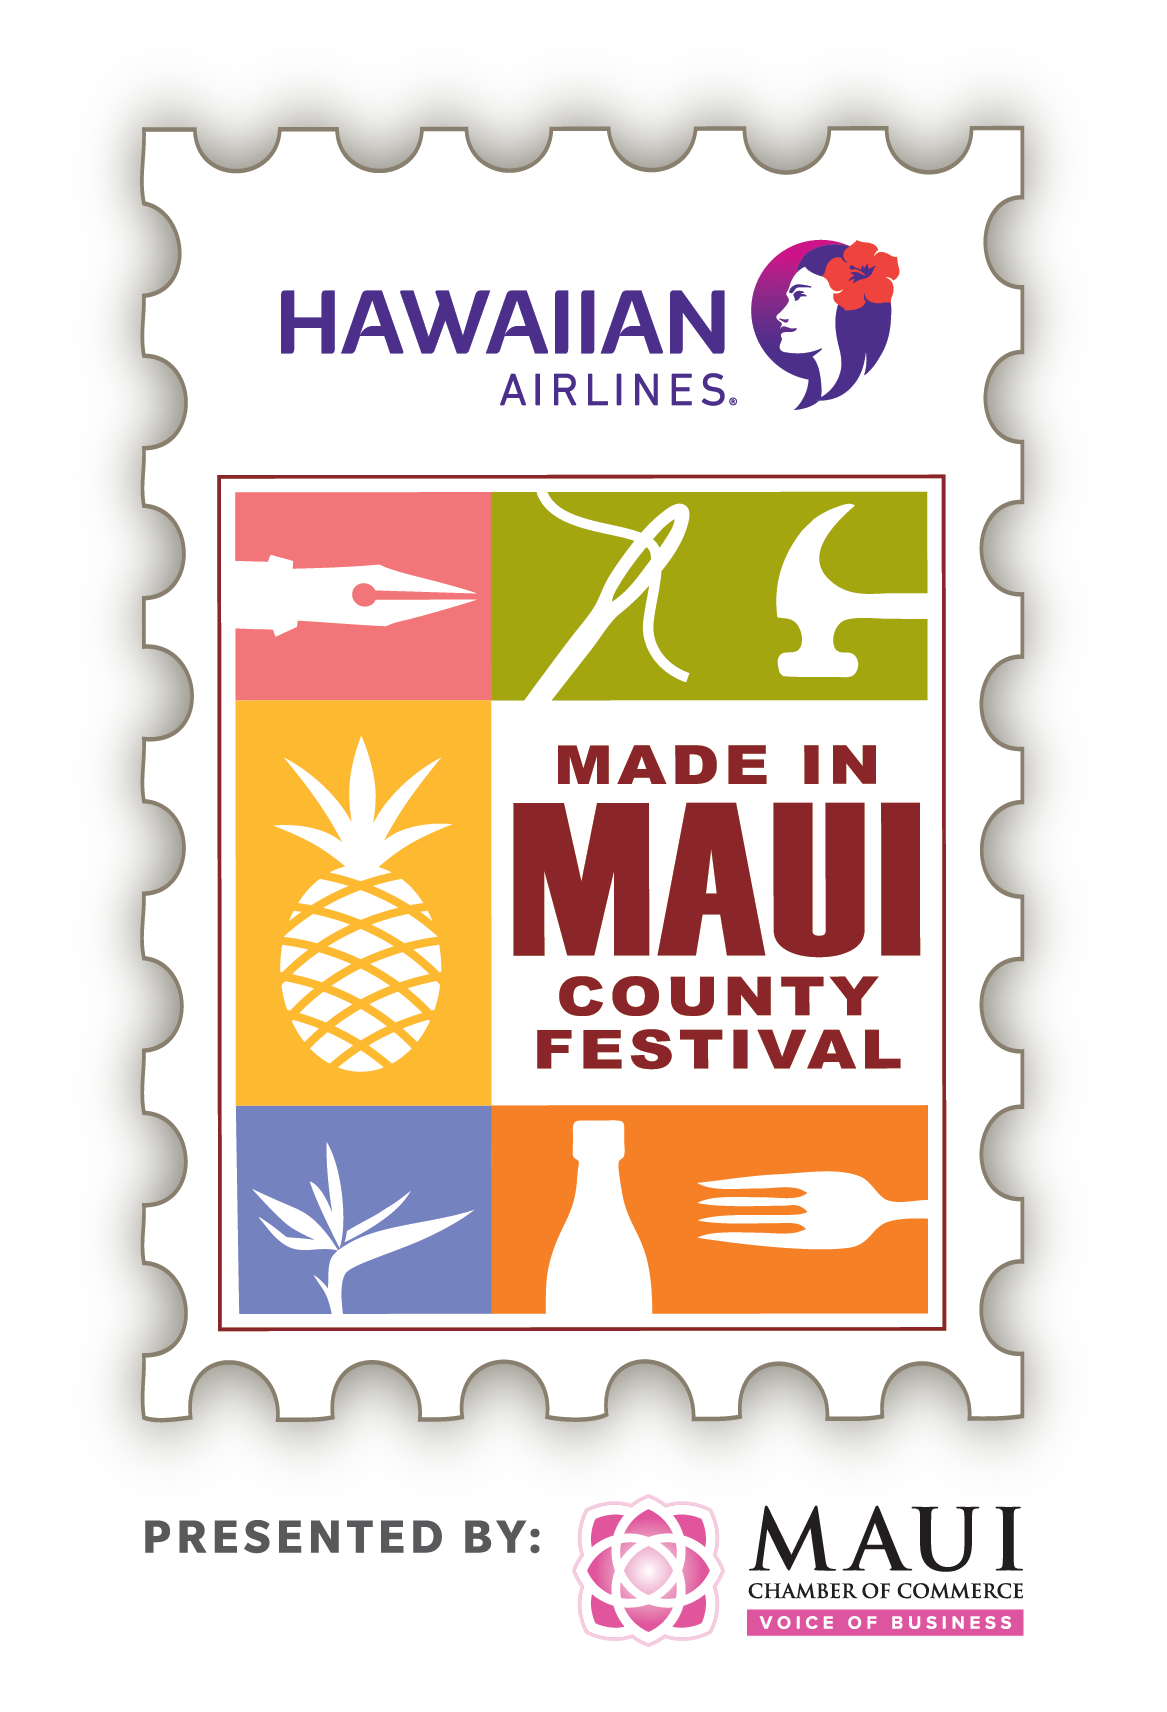 Hawaiian Airlines Made in Maui County Festival